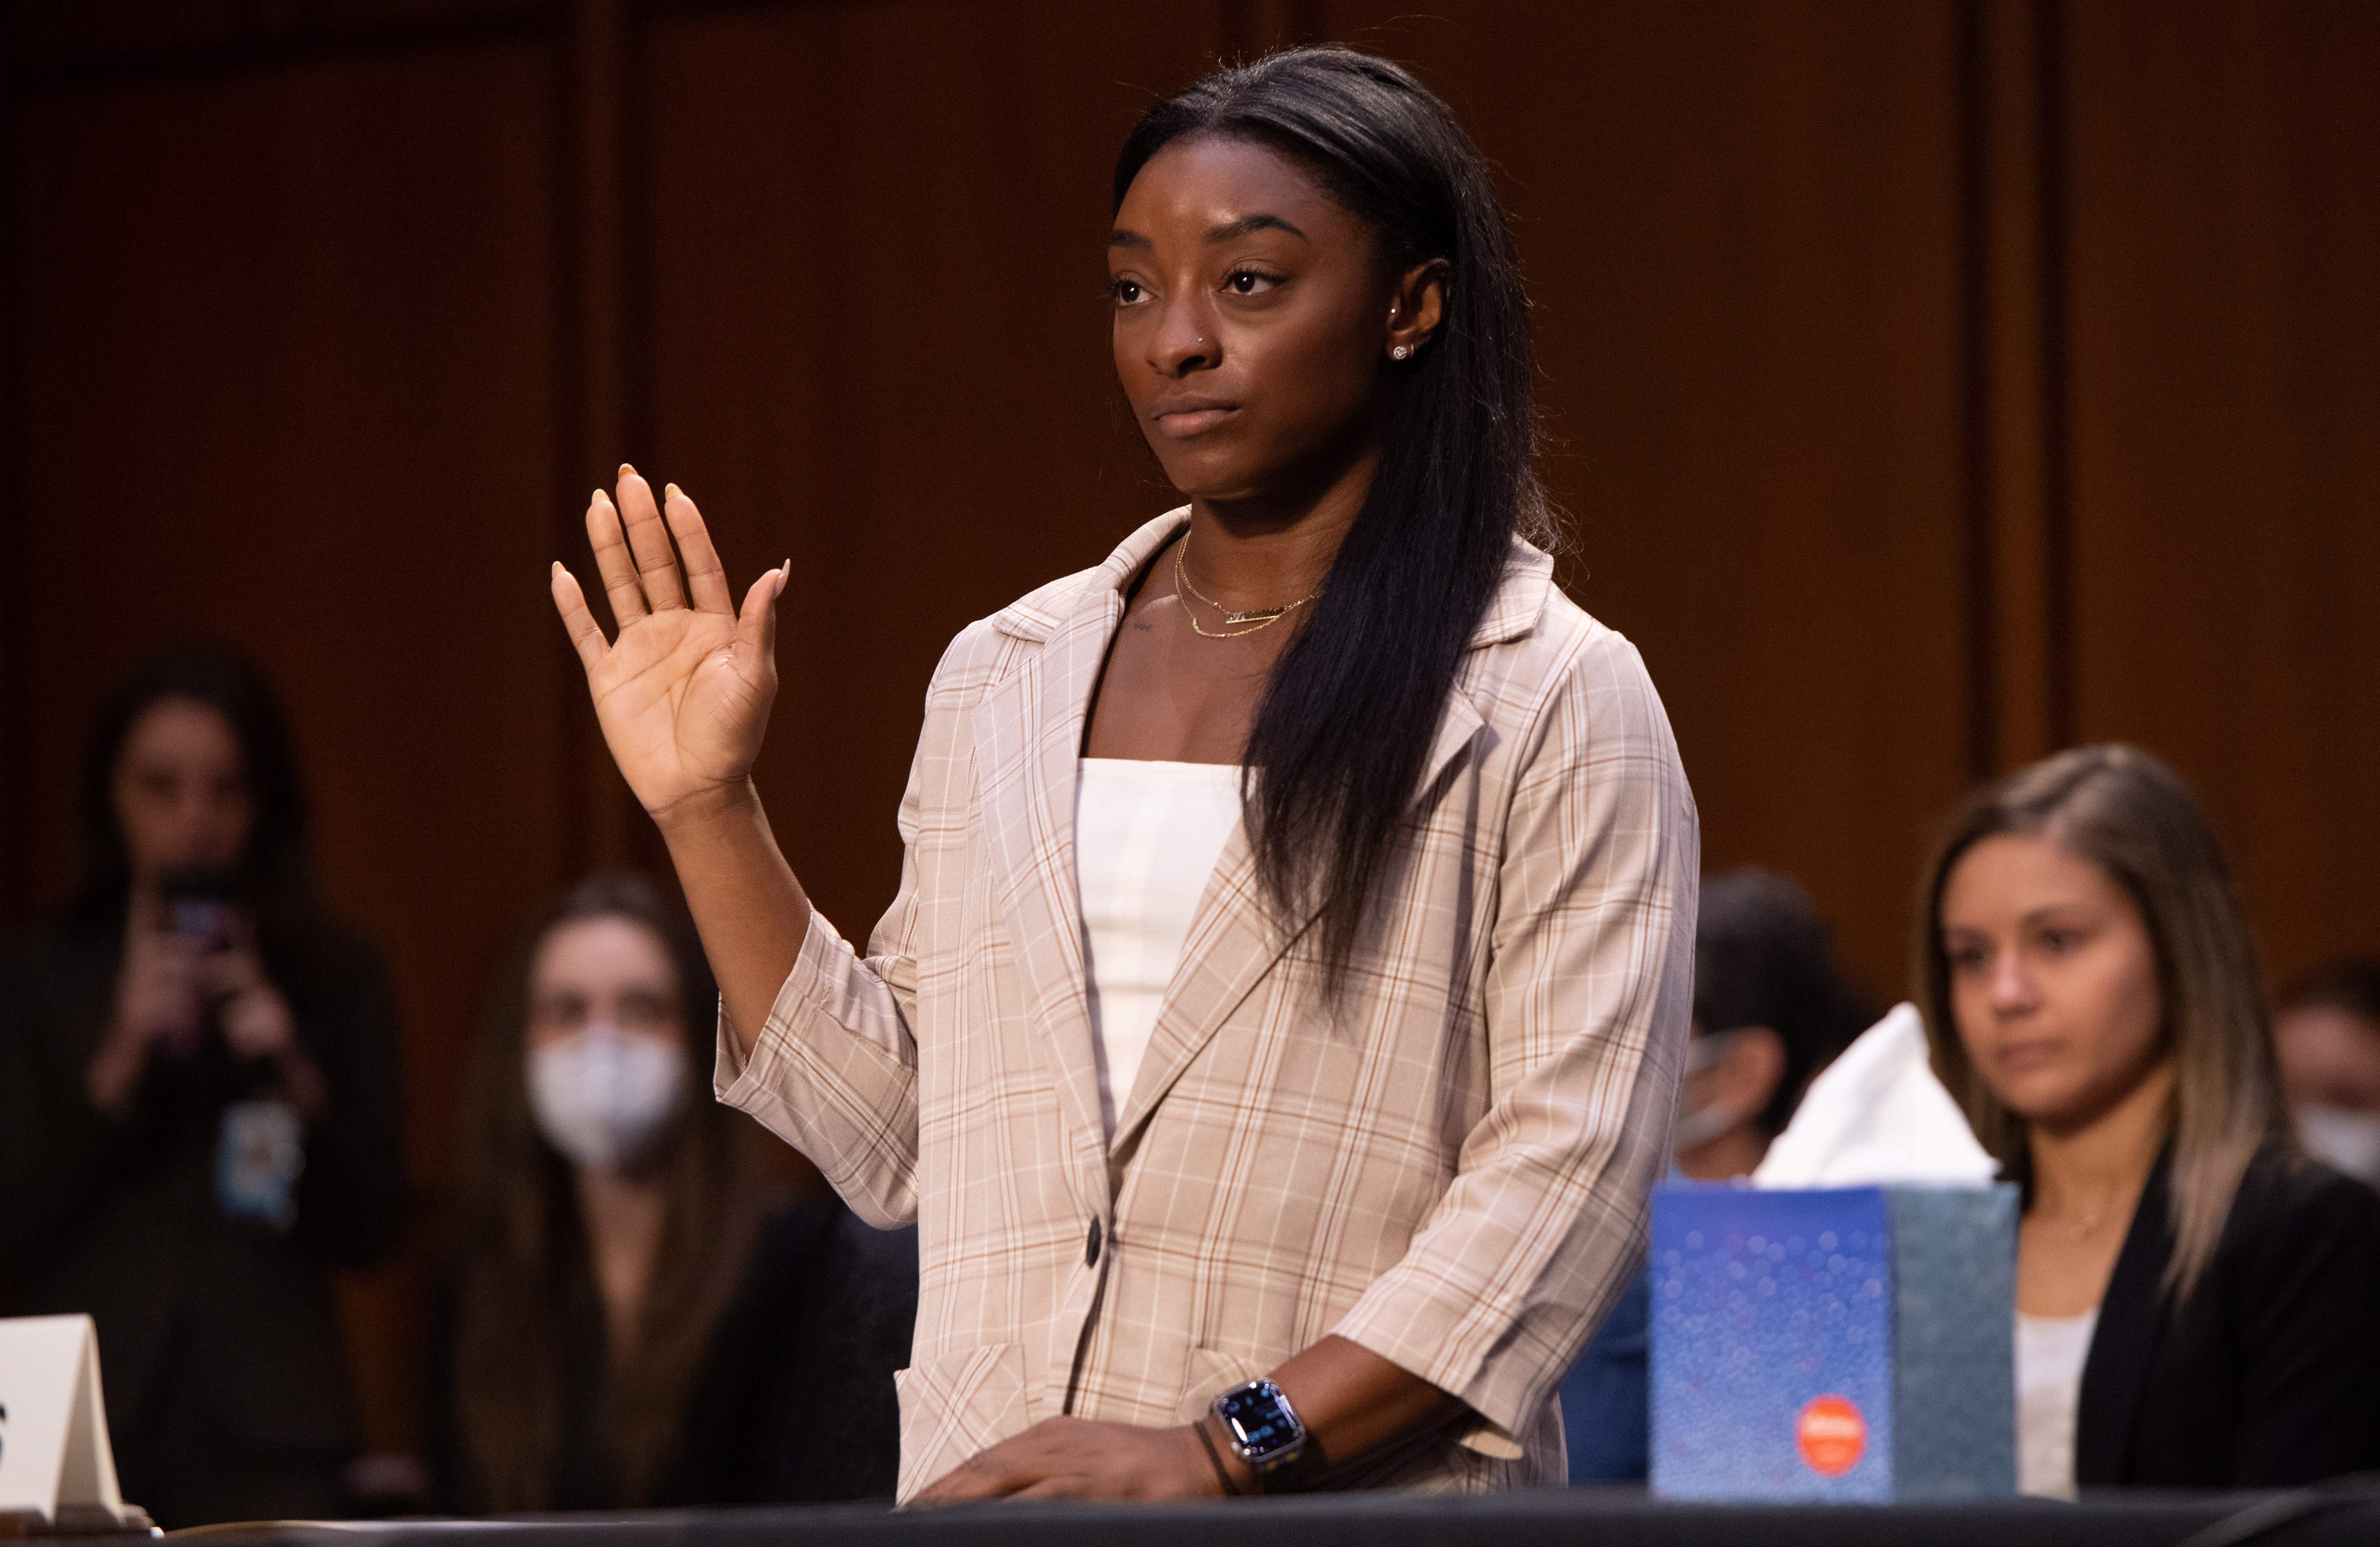 U.S. Olympic gymnast Simone Biles is sworn in to testify during a Senate Judiciary hearing about the Inspector General's report on the FBI handling of the Larry Nassar investigation of sexual abuse of Olympic gymnasts, on Capitol Hill, in Washington, D.C., U.S., September 15, 2021. Saul Loeb/Pool via REUTERS